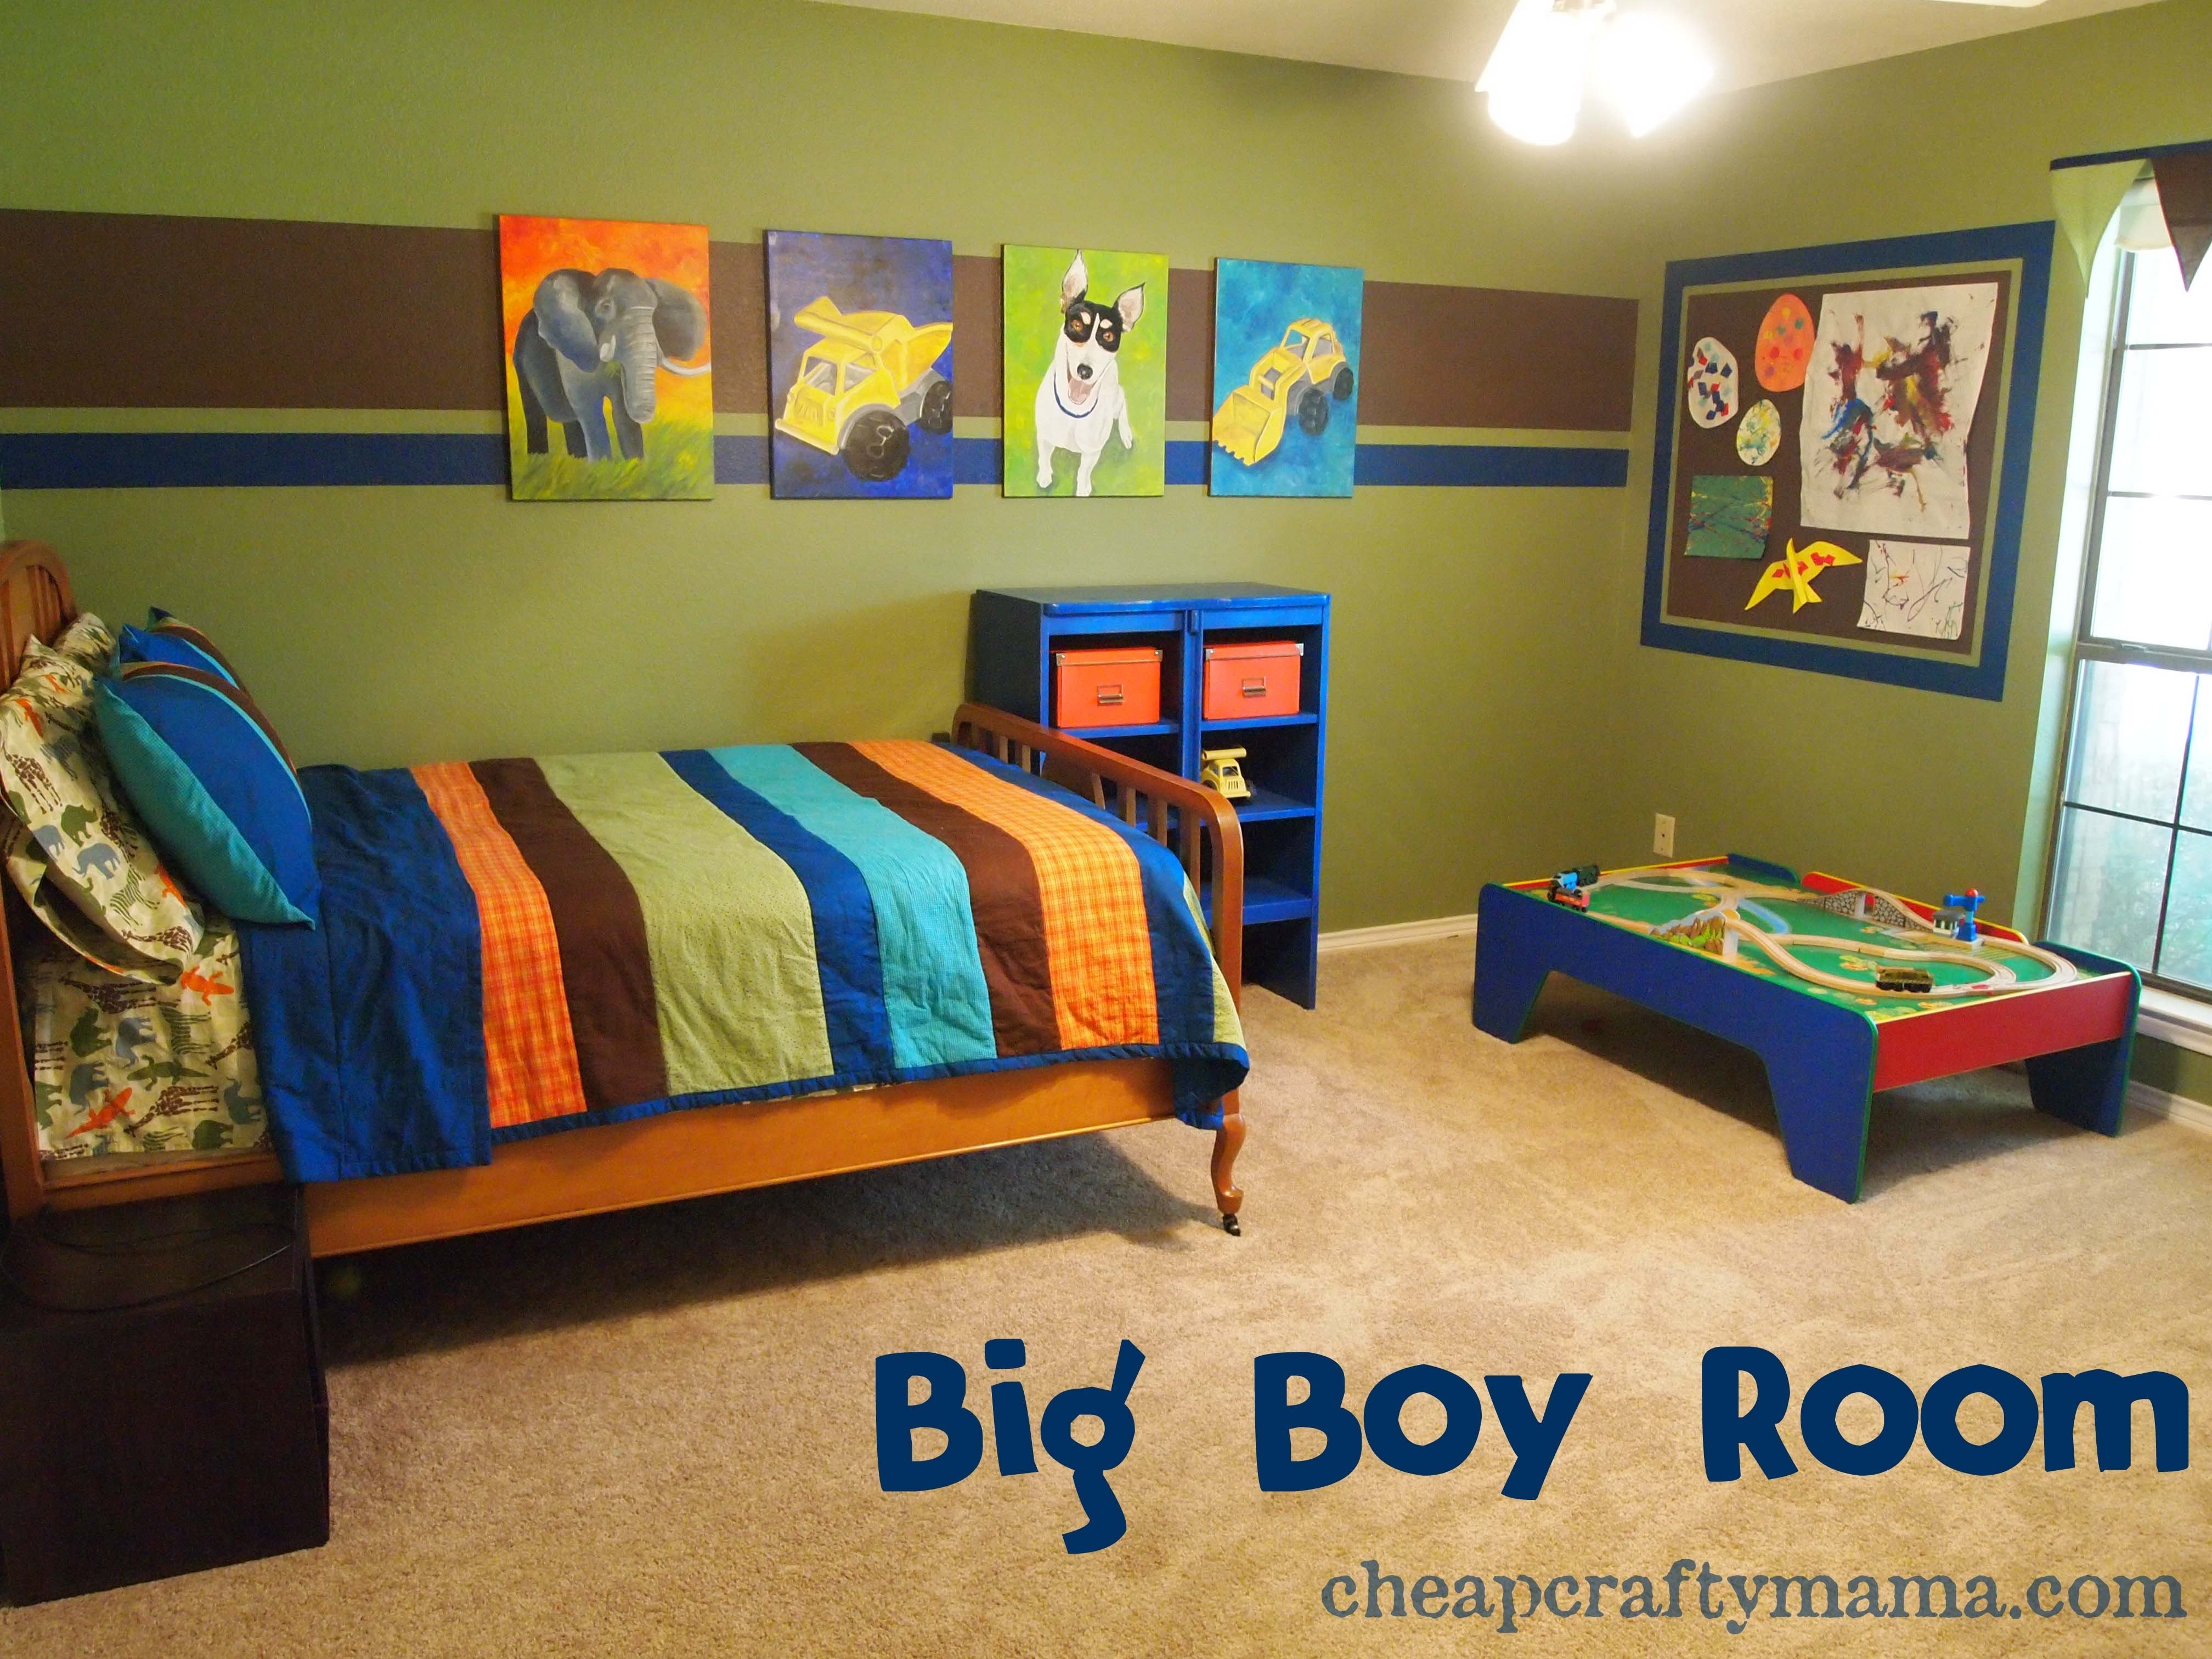 10 Most Popular Ideas For A Boys Room bedroom cool bedroom ideas for guys in modern contemporary home 2020